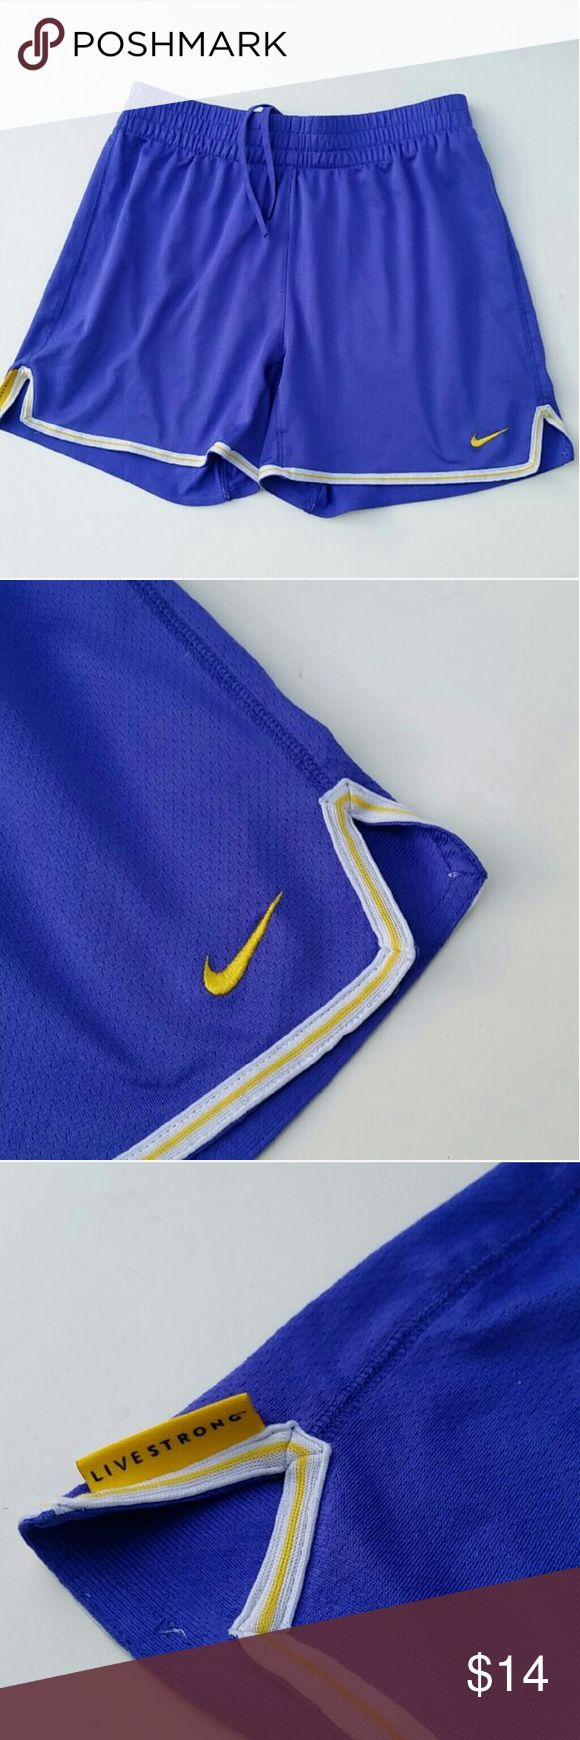 Nike womens running shorts with liner - Nike Women S Running Shorts S Nike Women S Running Shorts Size Small Great Condition